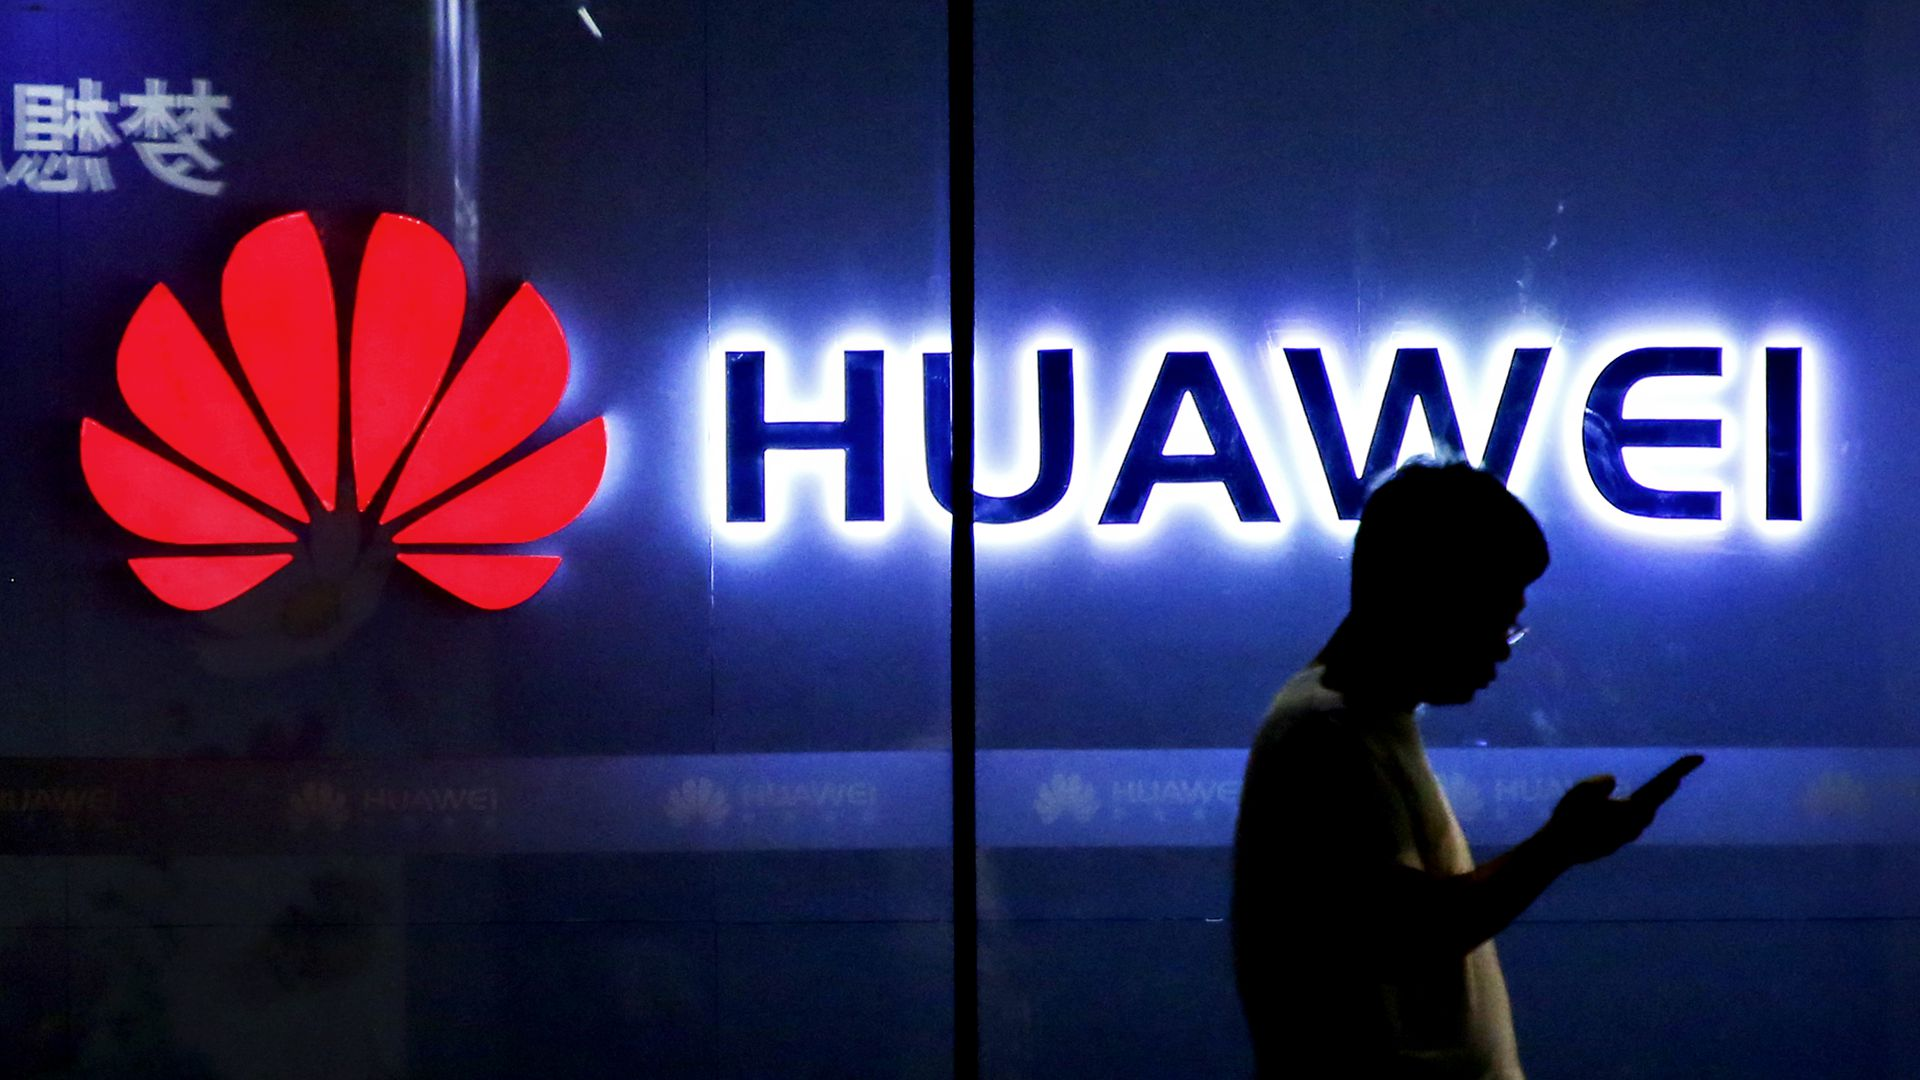 Photo of a man with a smartphone silhouetted against a glowing Huawei sign